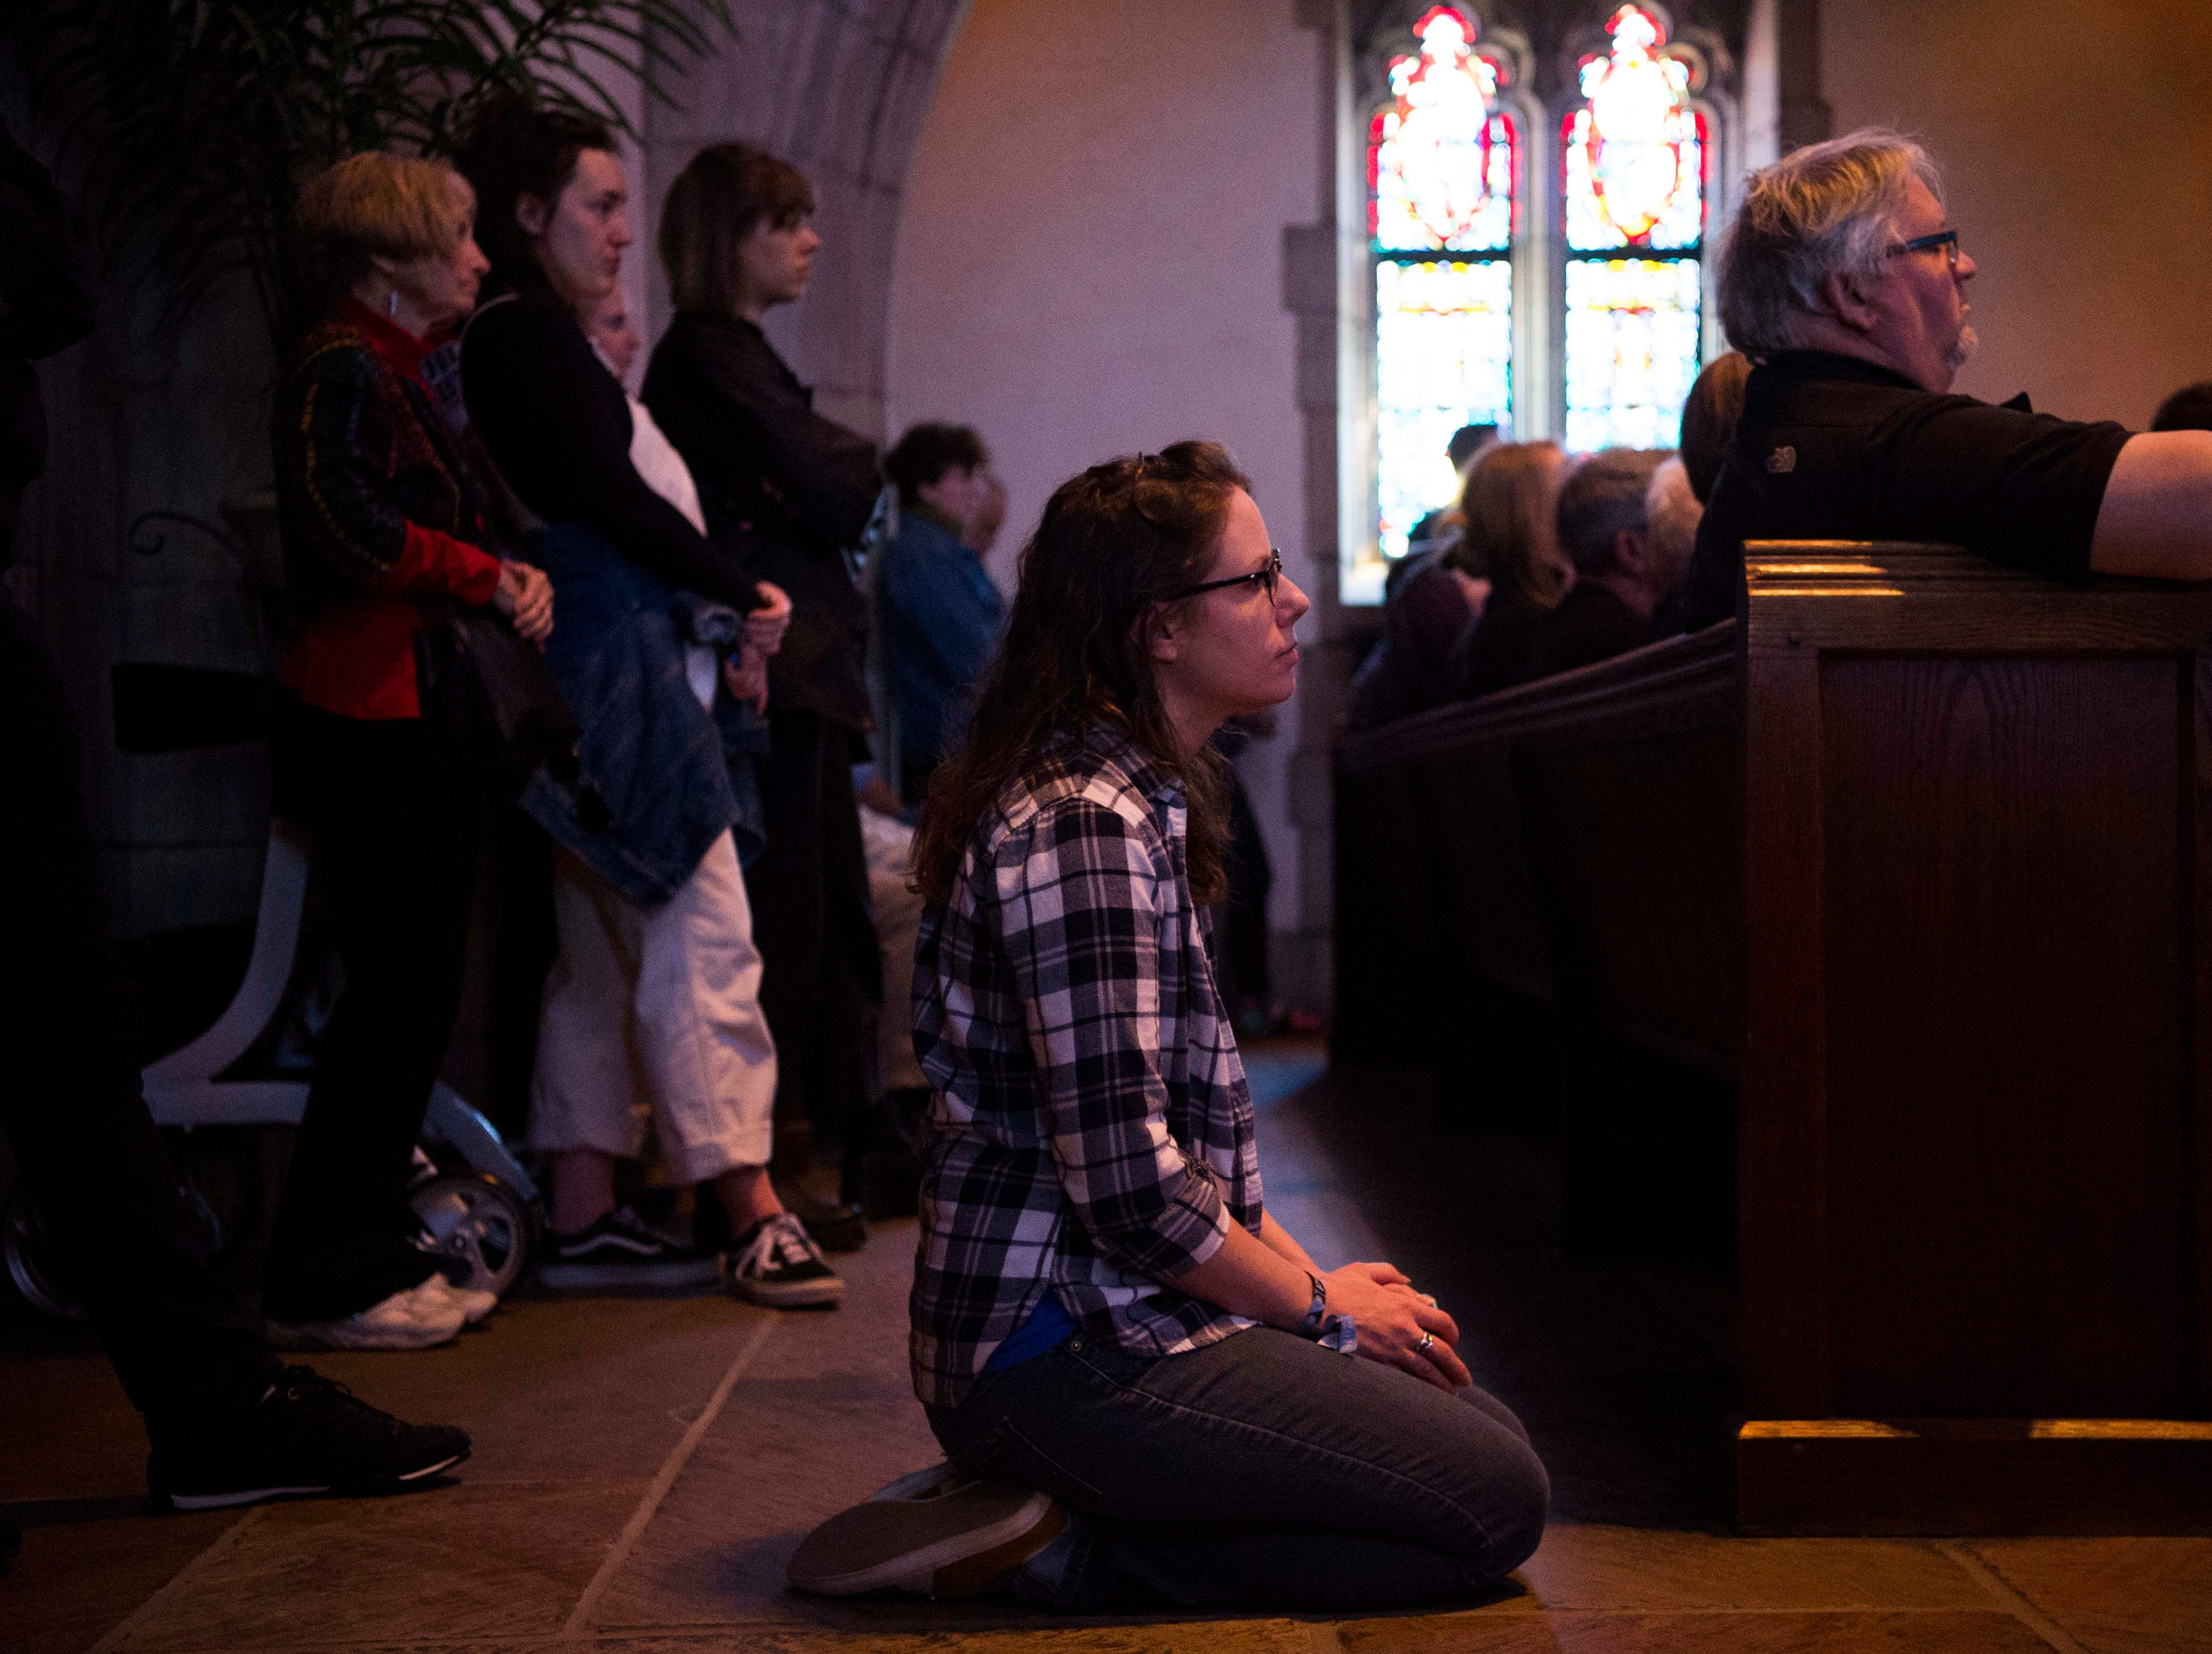 Big Ears attendees sit in Church Street United Methodist Church listening to Harold Budd with nief-norf with Mary Lattimore perform during Big Ears Music Festival in downtown Knoxville Friday, March 22, 2019.